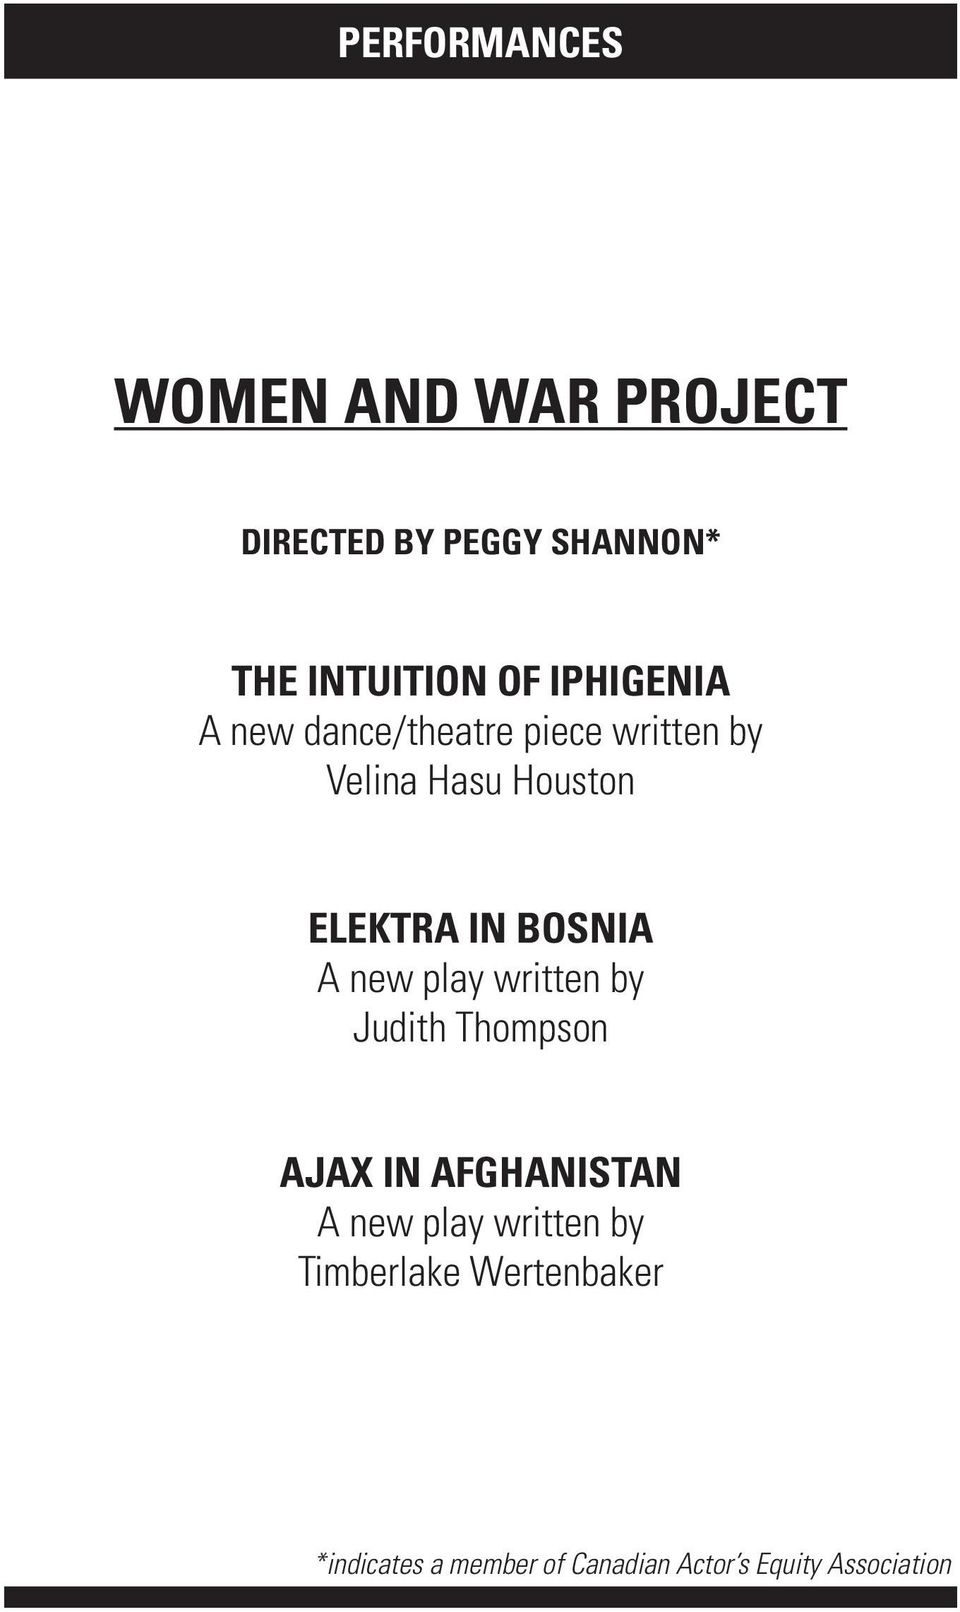 BOSNIA A new play written by Judith Thompson AJAX IN AFGHANISTAN A new play